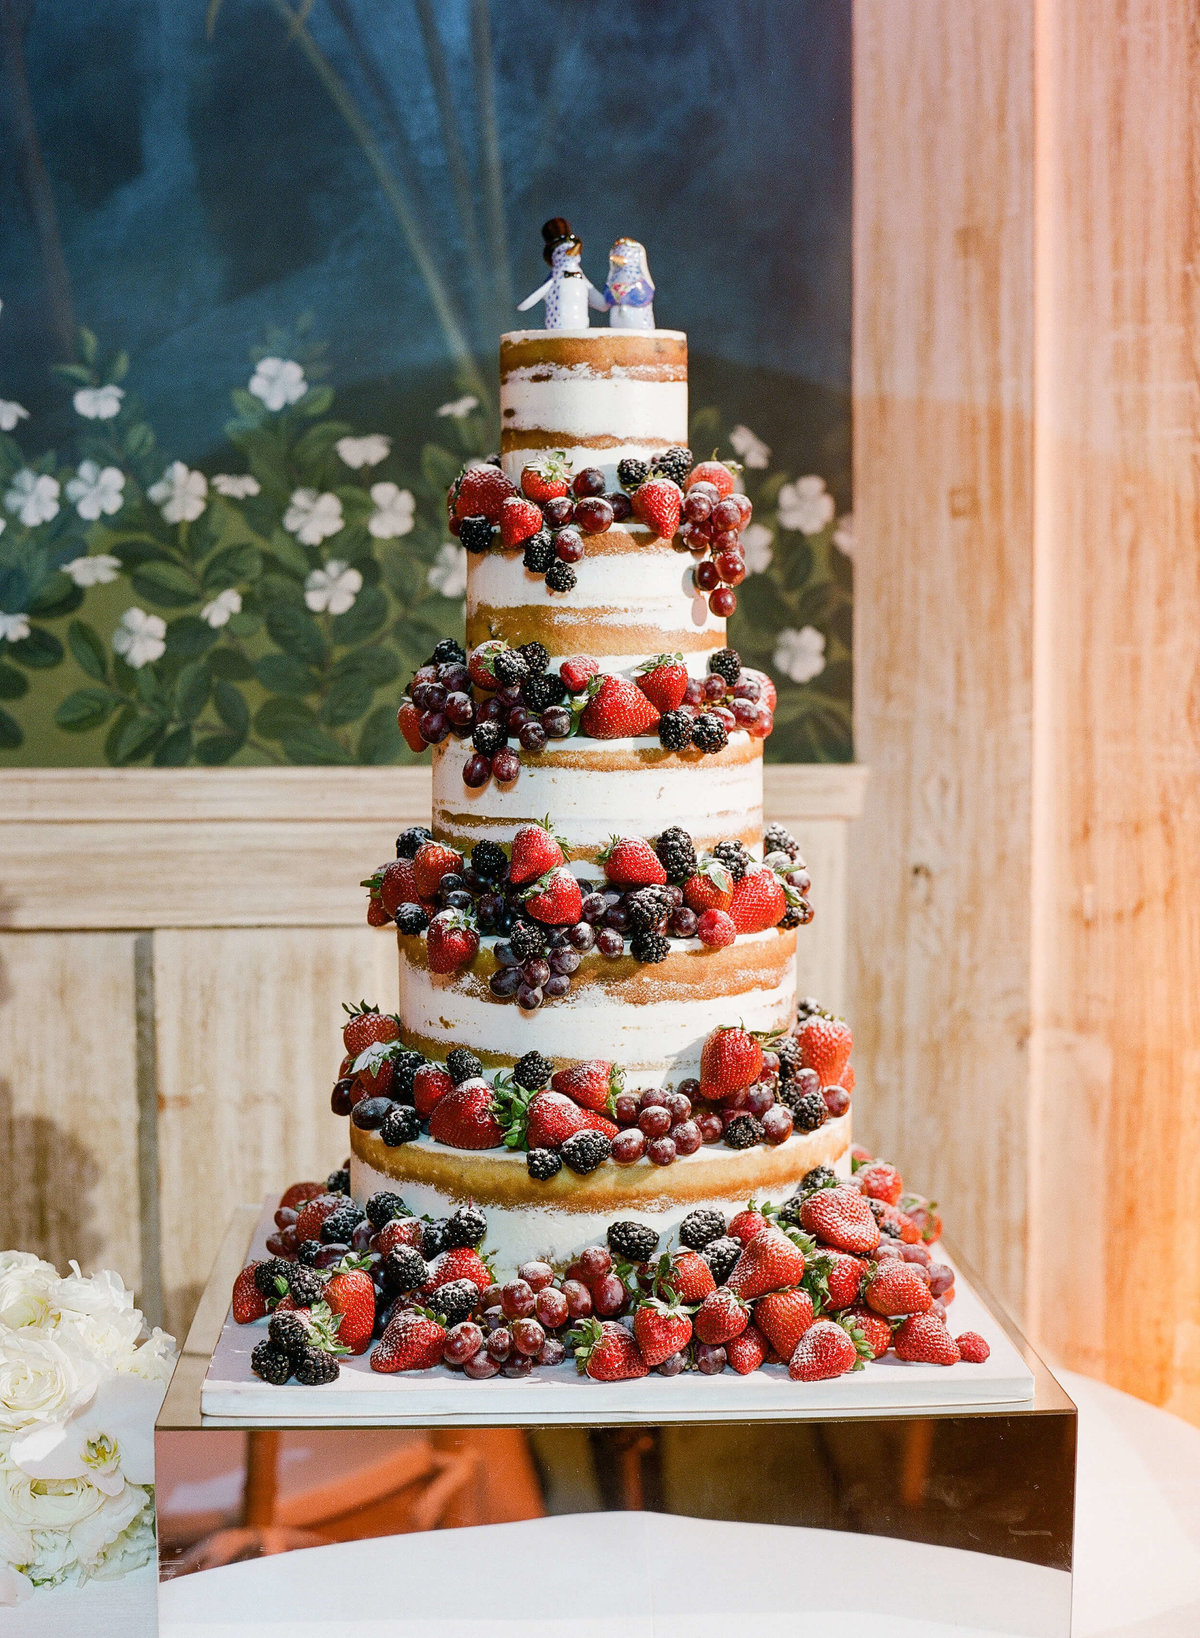 63-KTMerry-wedding-photography-cake-berries-earth-sugar